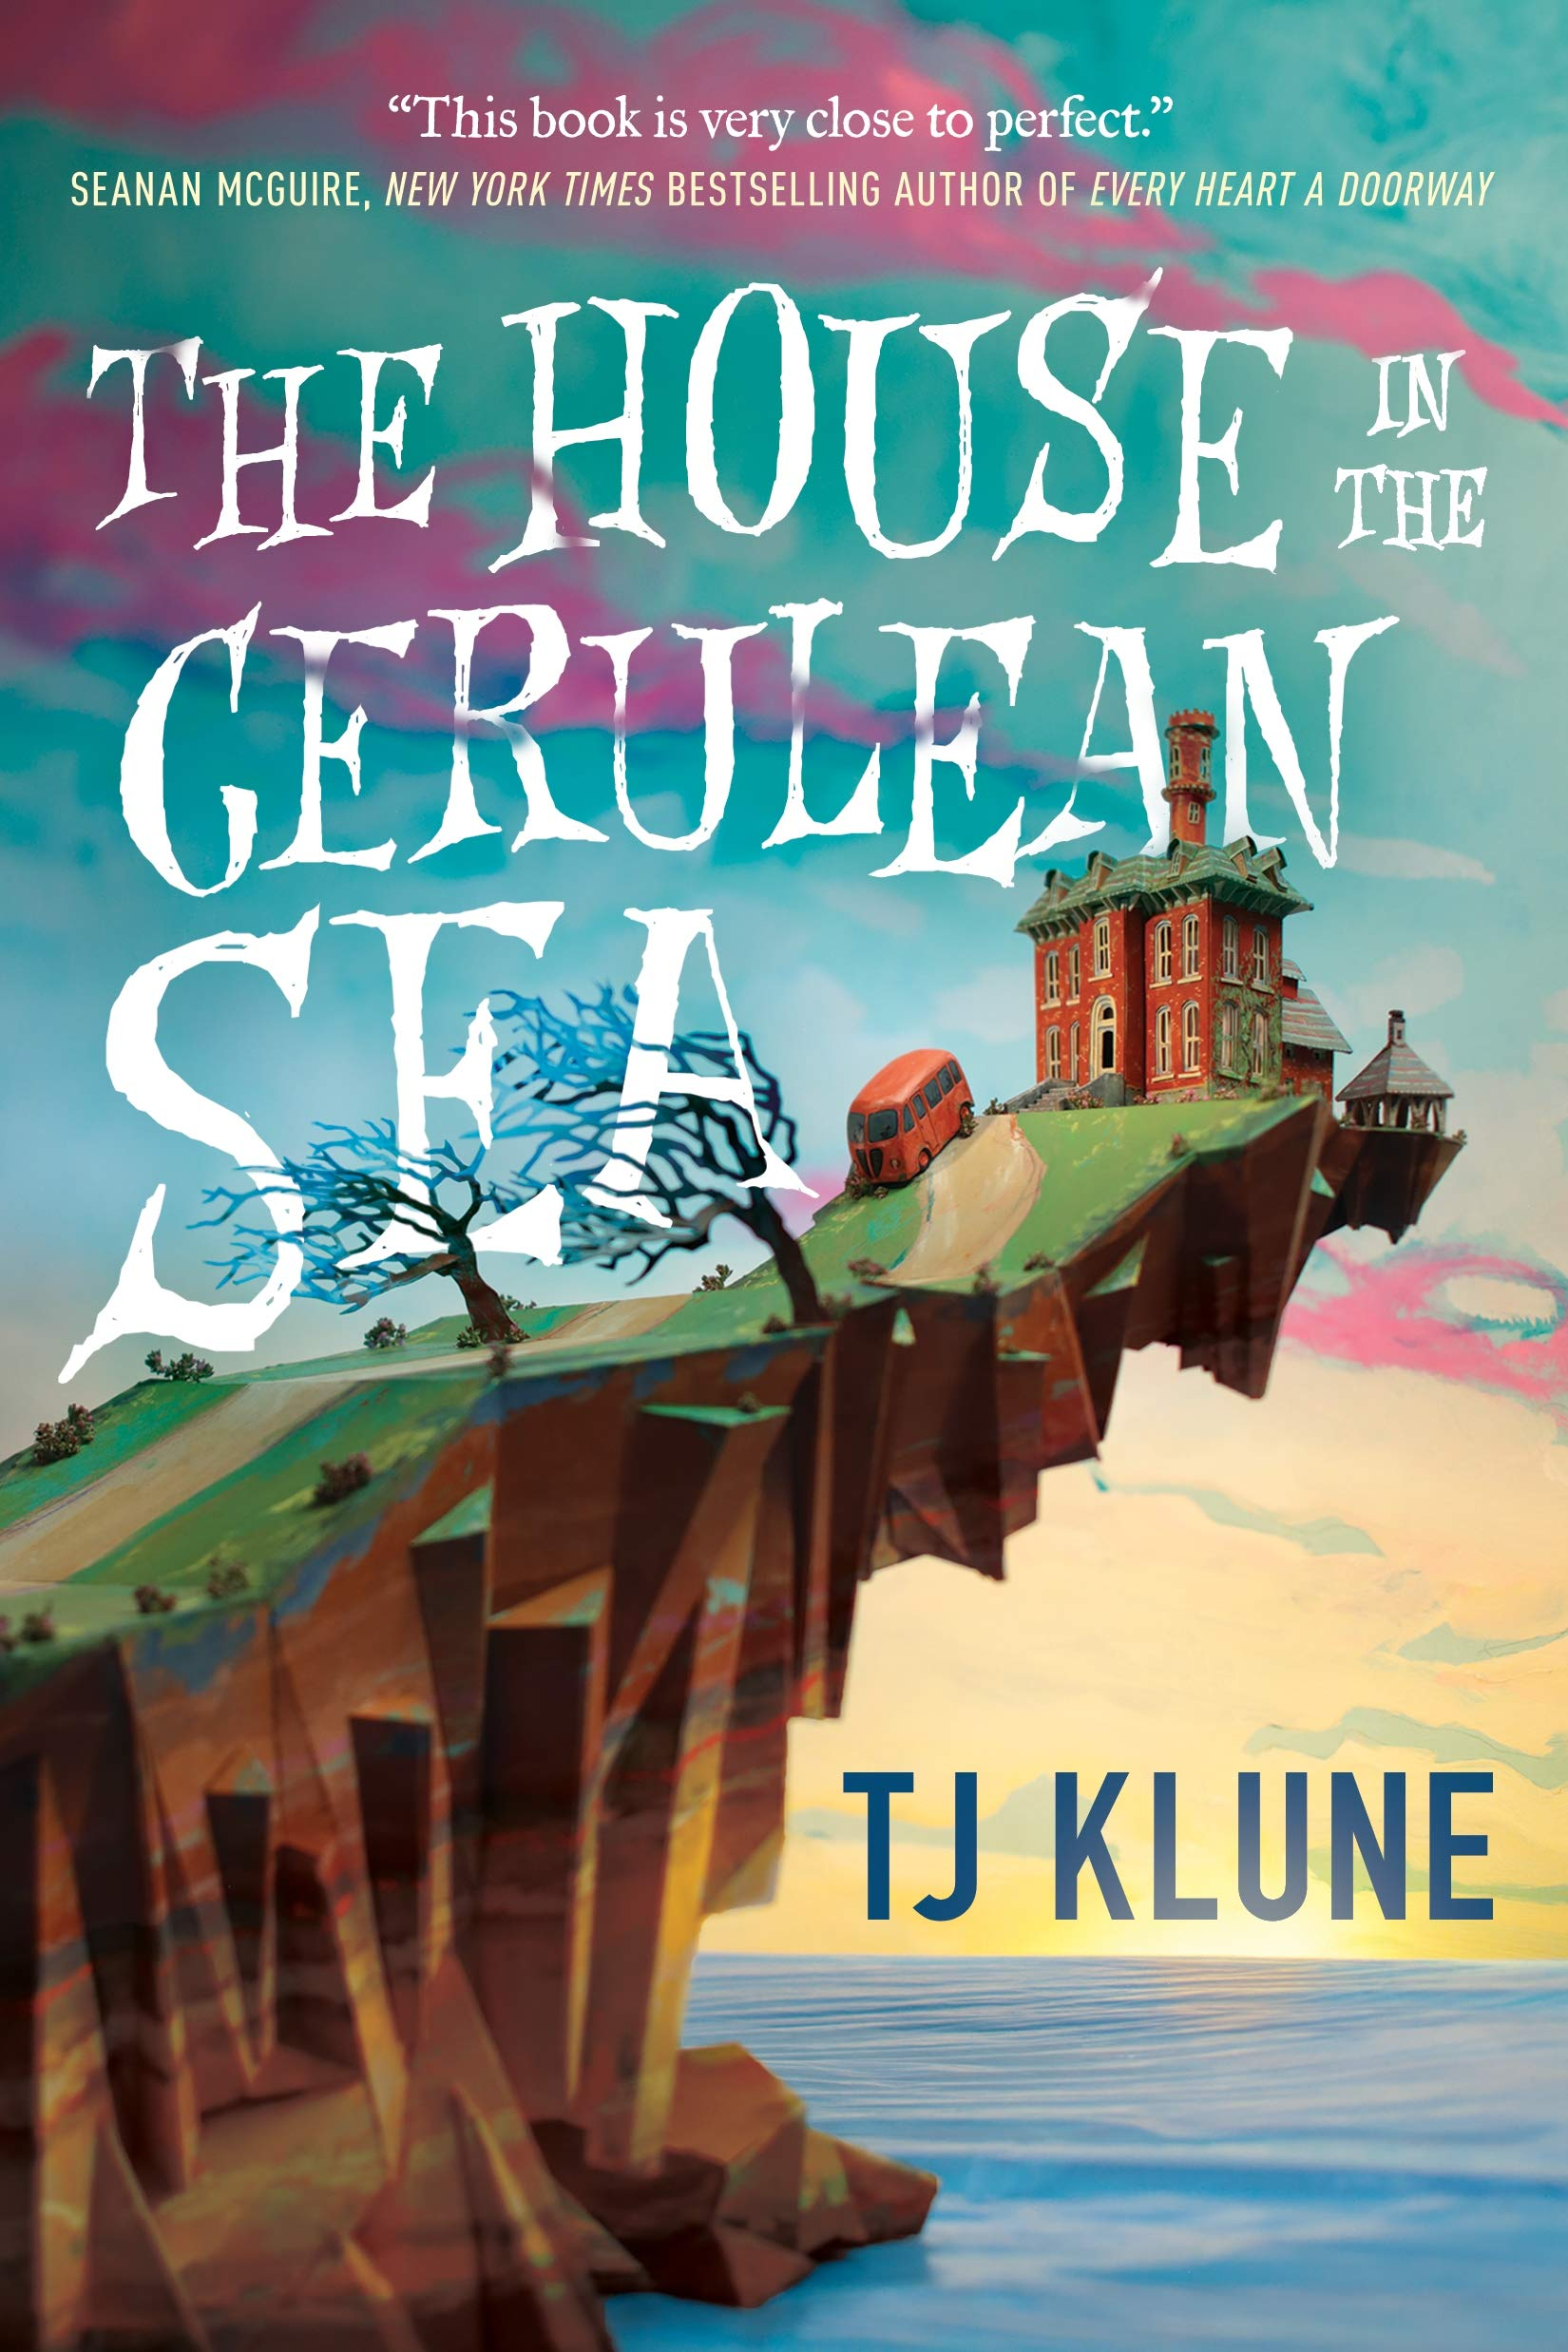 The House in the Cerulean Sea by Tor Books